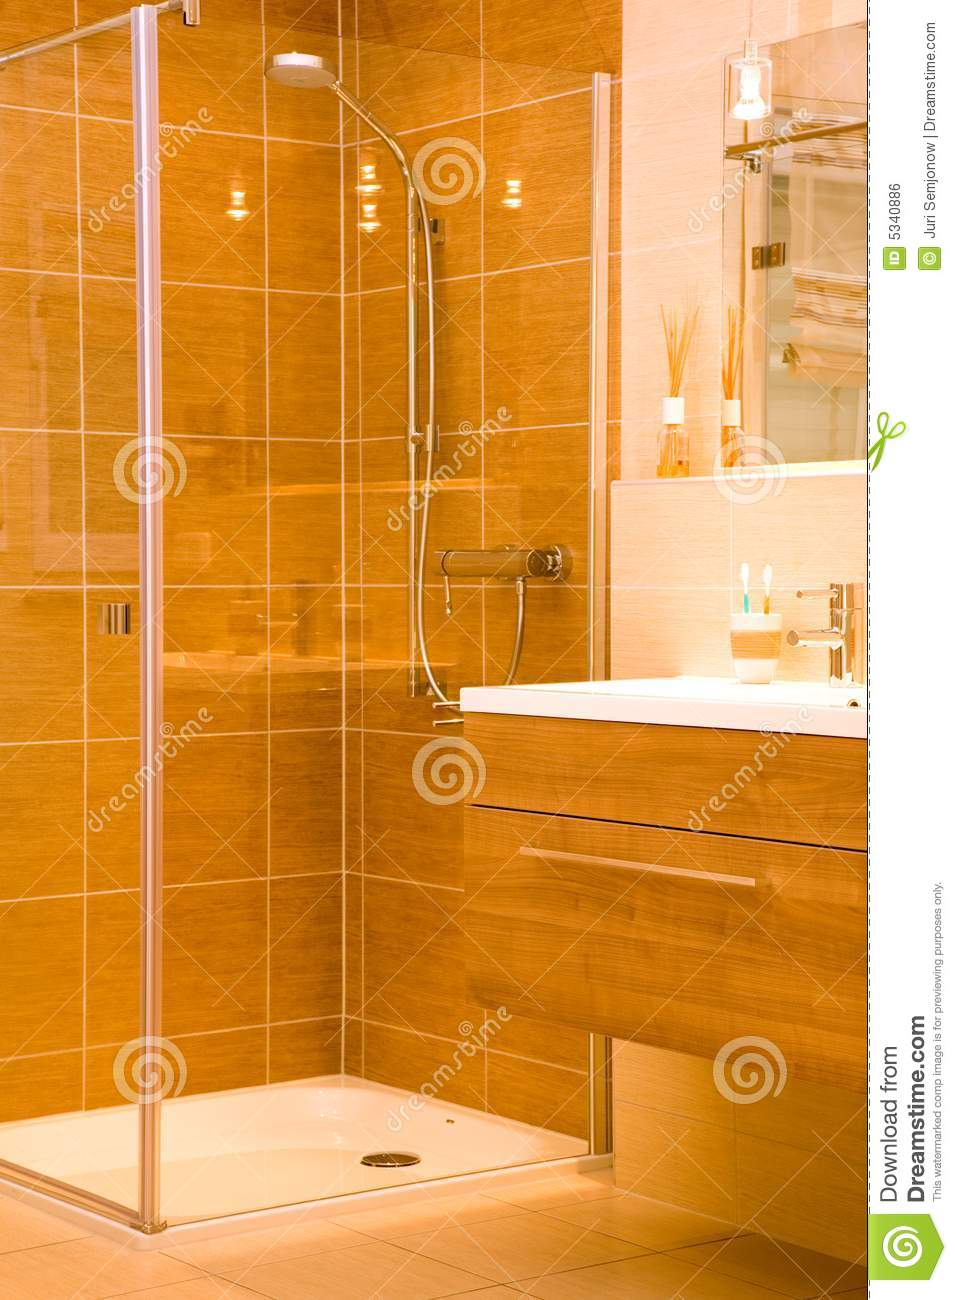 Stunning image douche moderne ideas for Agencement salle de bain 10m2